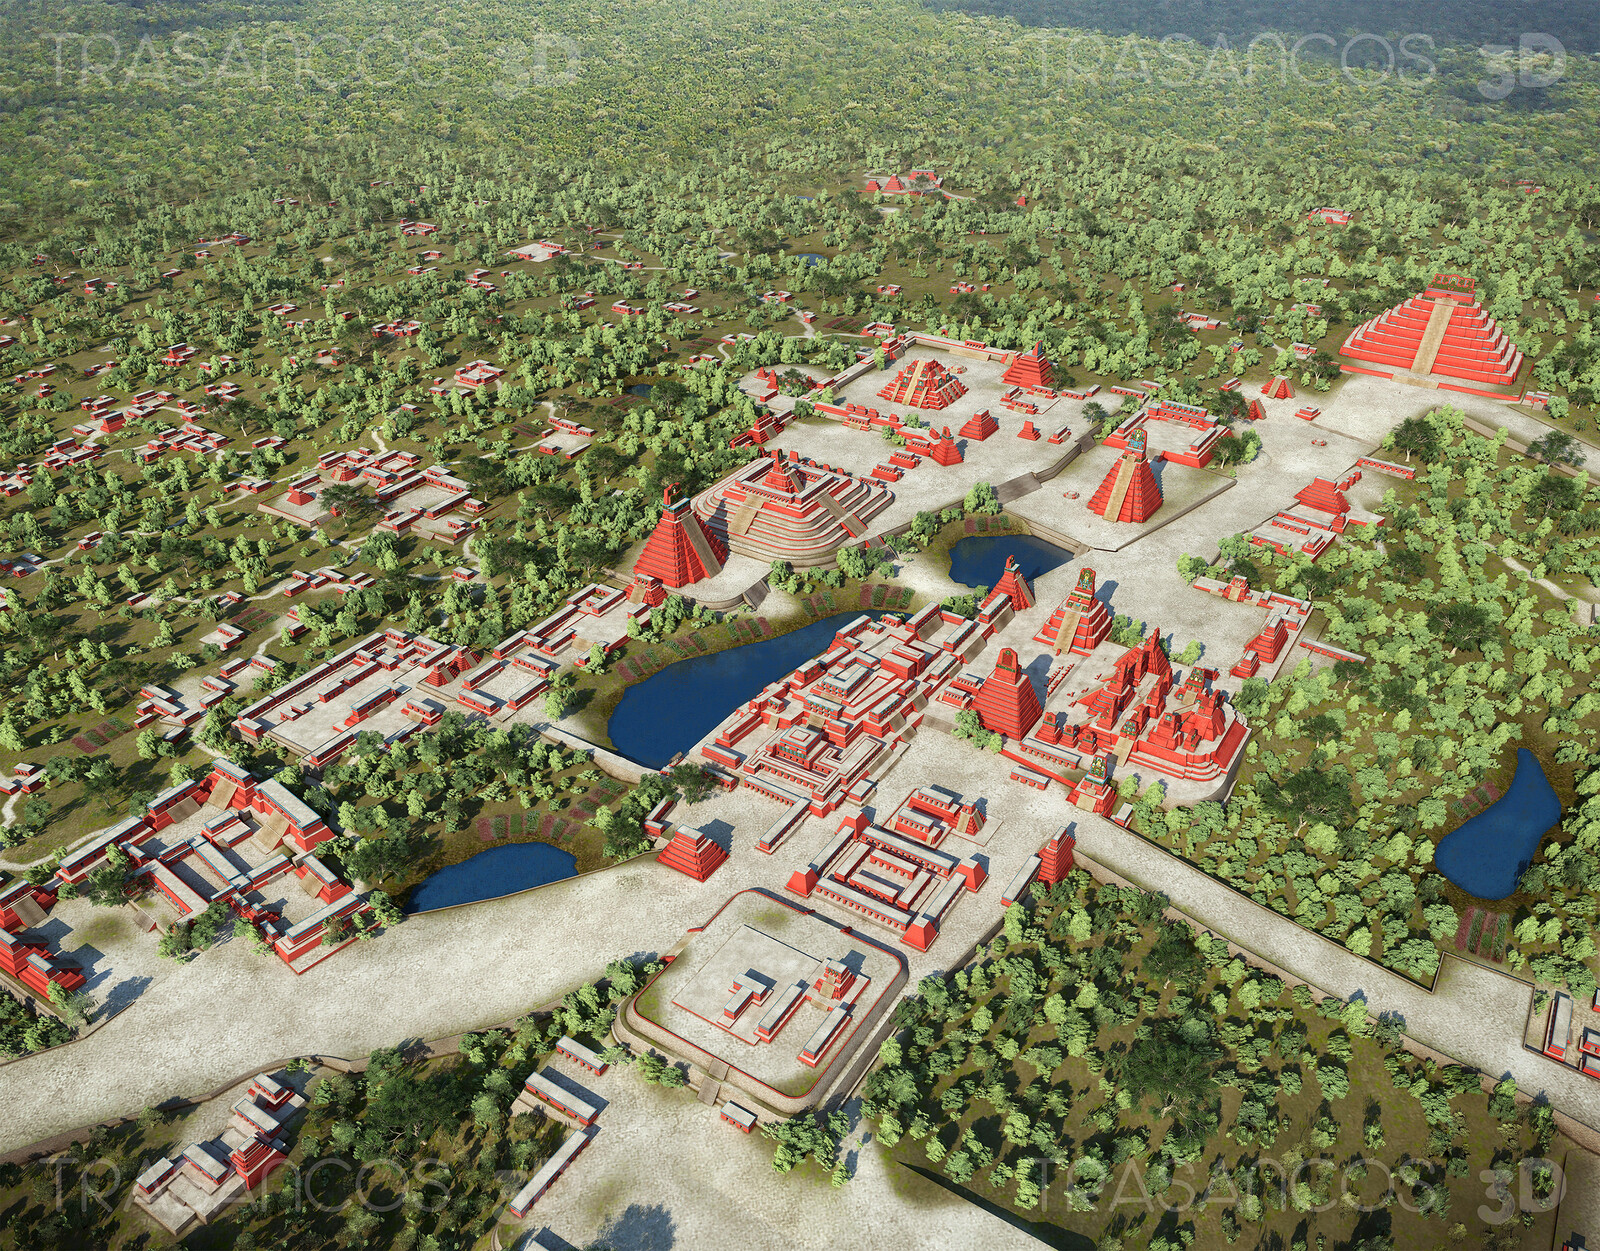 Aerial view of the reconstructed mayan city of Tikal, in Guatemala. Modeled in collaboration with: - Andrés Armesto - Alejandro Soriano - Carlos Paz - Diego Blanco